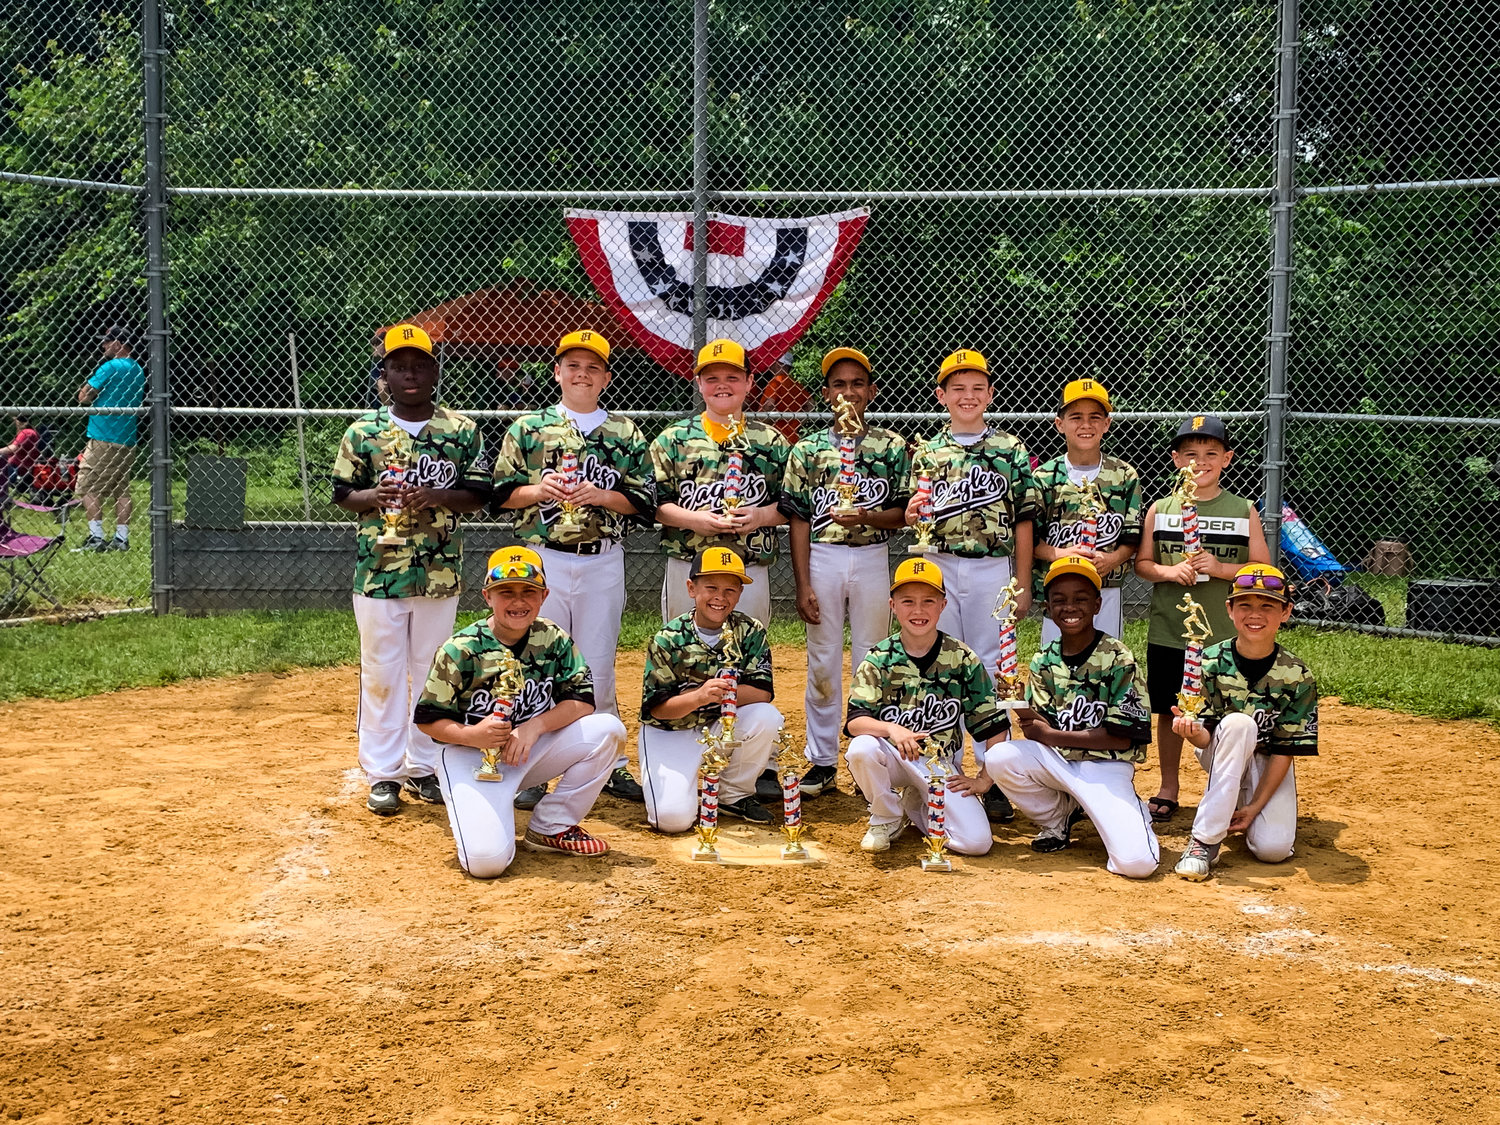 The 9U Pasadena Eagles Gold baseball team won the championship of the Maryland Stars and Strikes Tournament and has played well all summer on the competitive tournament circuit.